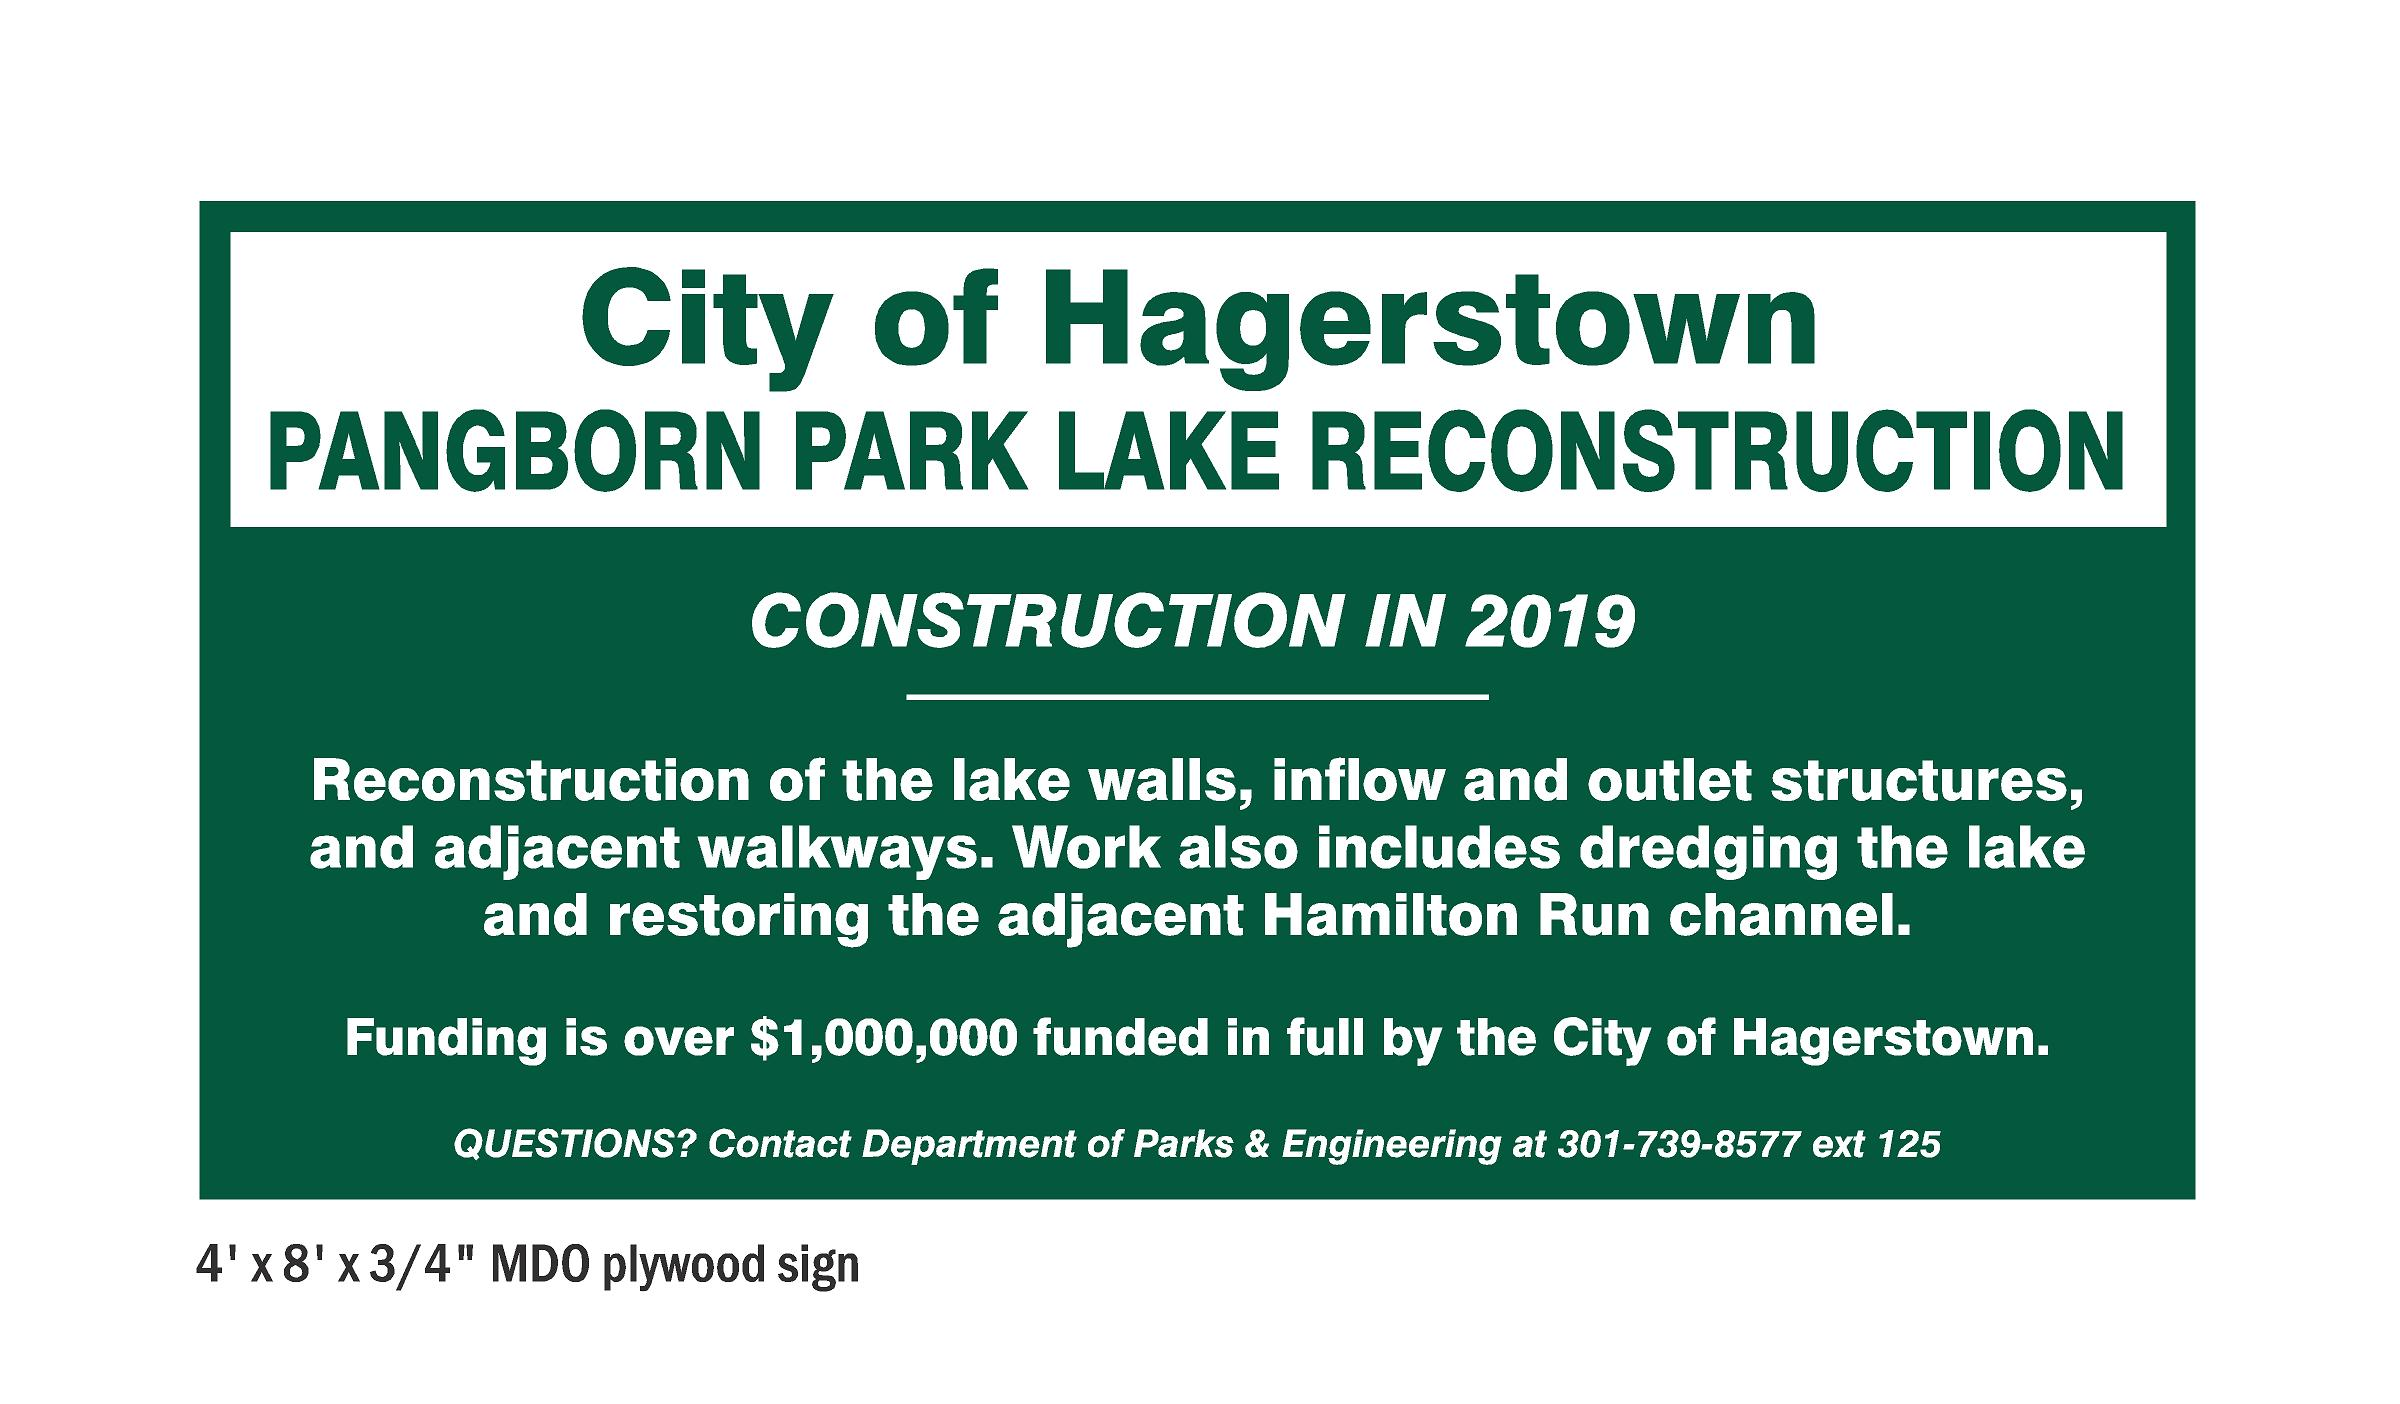 PANGBORN PARK LAKE RECONSTRUCTION